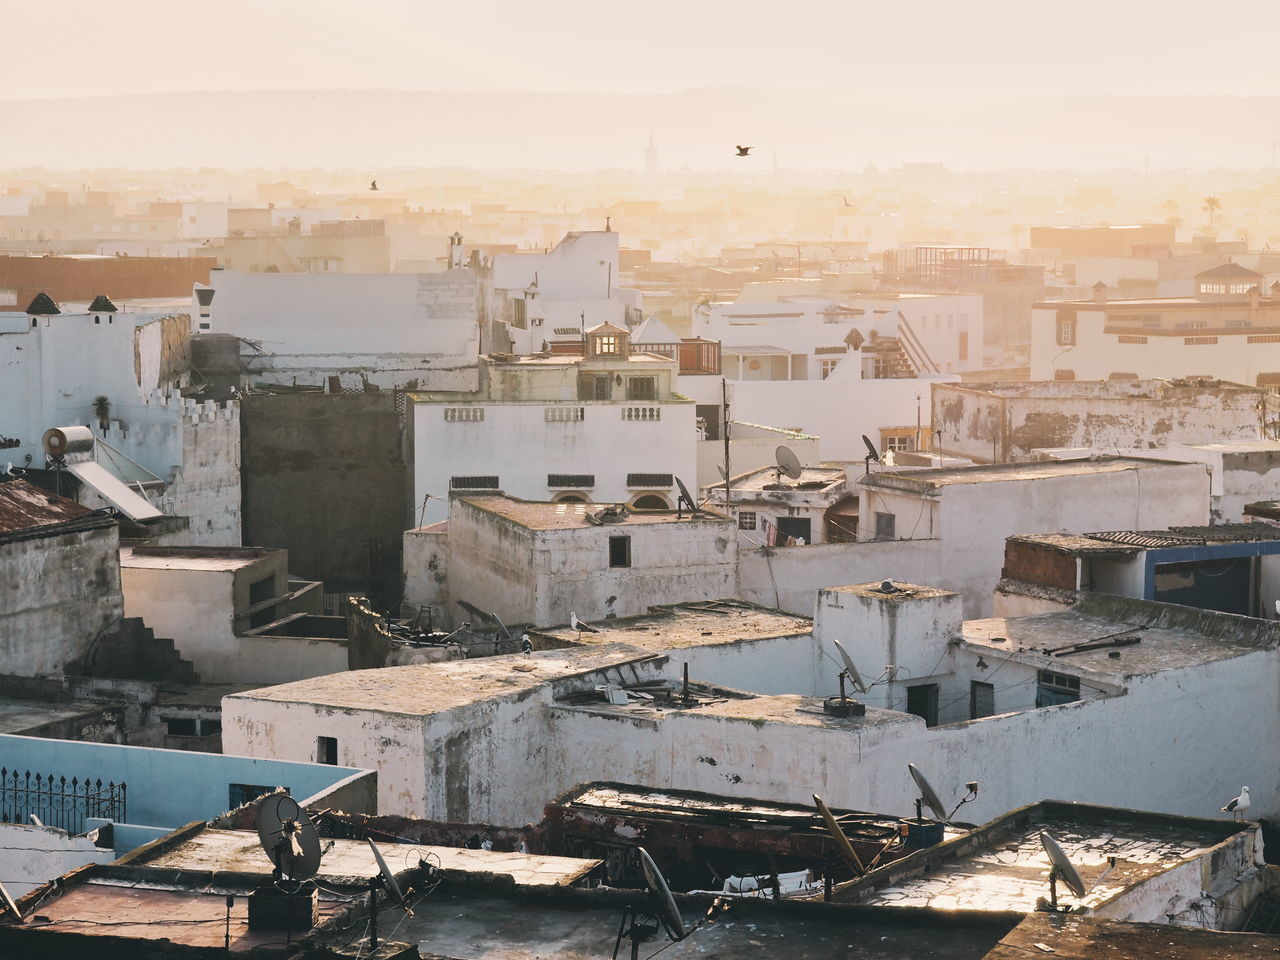 Cityscape City Aerial View Architecture No People Outdoors Building Exterior Extreme Weather Sky Day Travel Photography City Sunrise Morning Light Golden Hour Rooftop View  Rooftop Morocco Essaouira Building Terrace Urban Skyline Roof Travel Destinations Cityscape City High Angle View